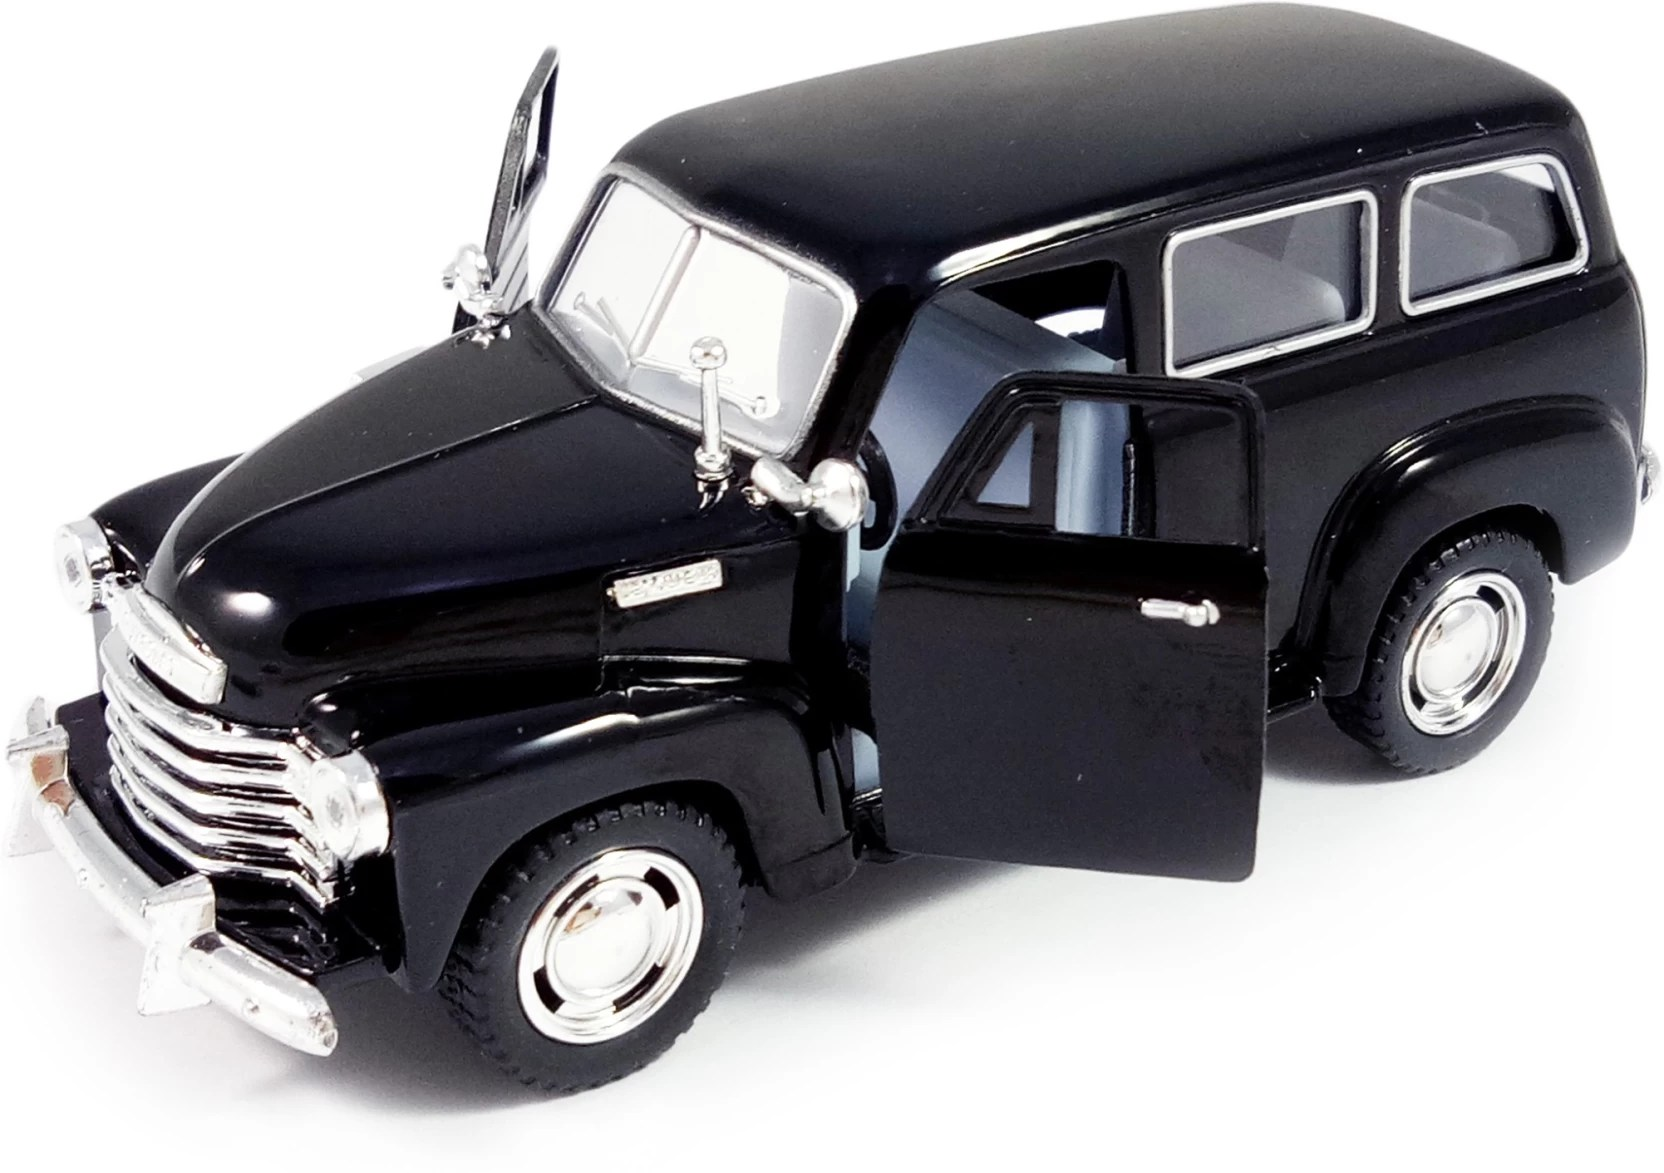 hight resolution of kinsmart 5 1 36 scale pull back action 1950 chevrolet suburban carryall car toys for kids from smiles creation black